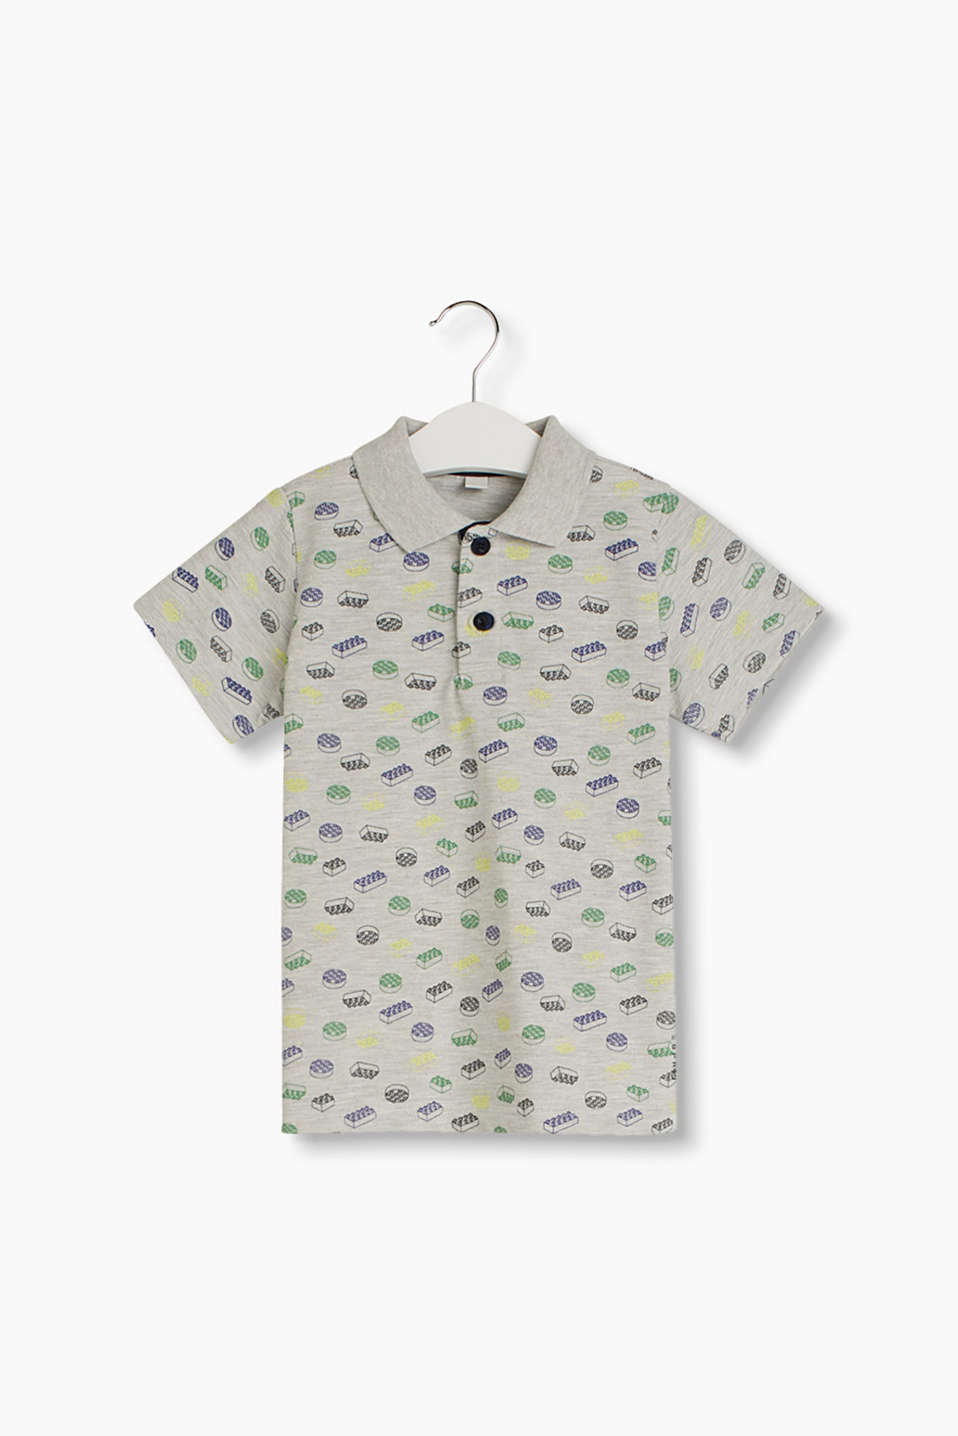 Trendy print polo shirt with neon effects, cotton blend